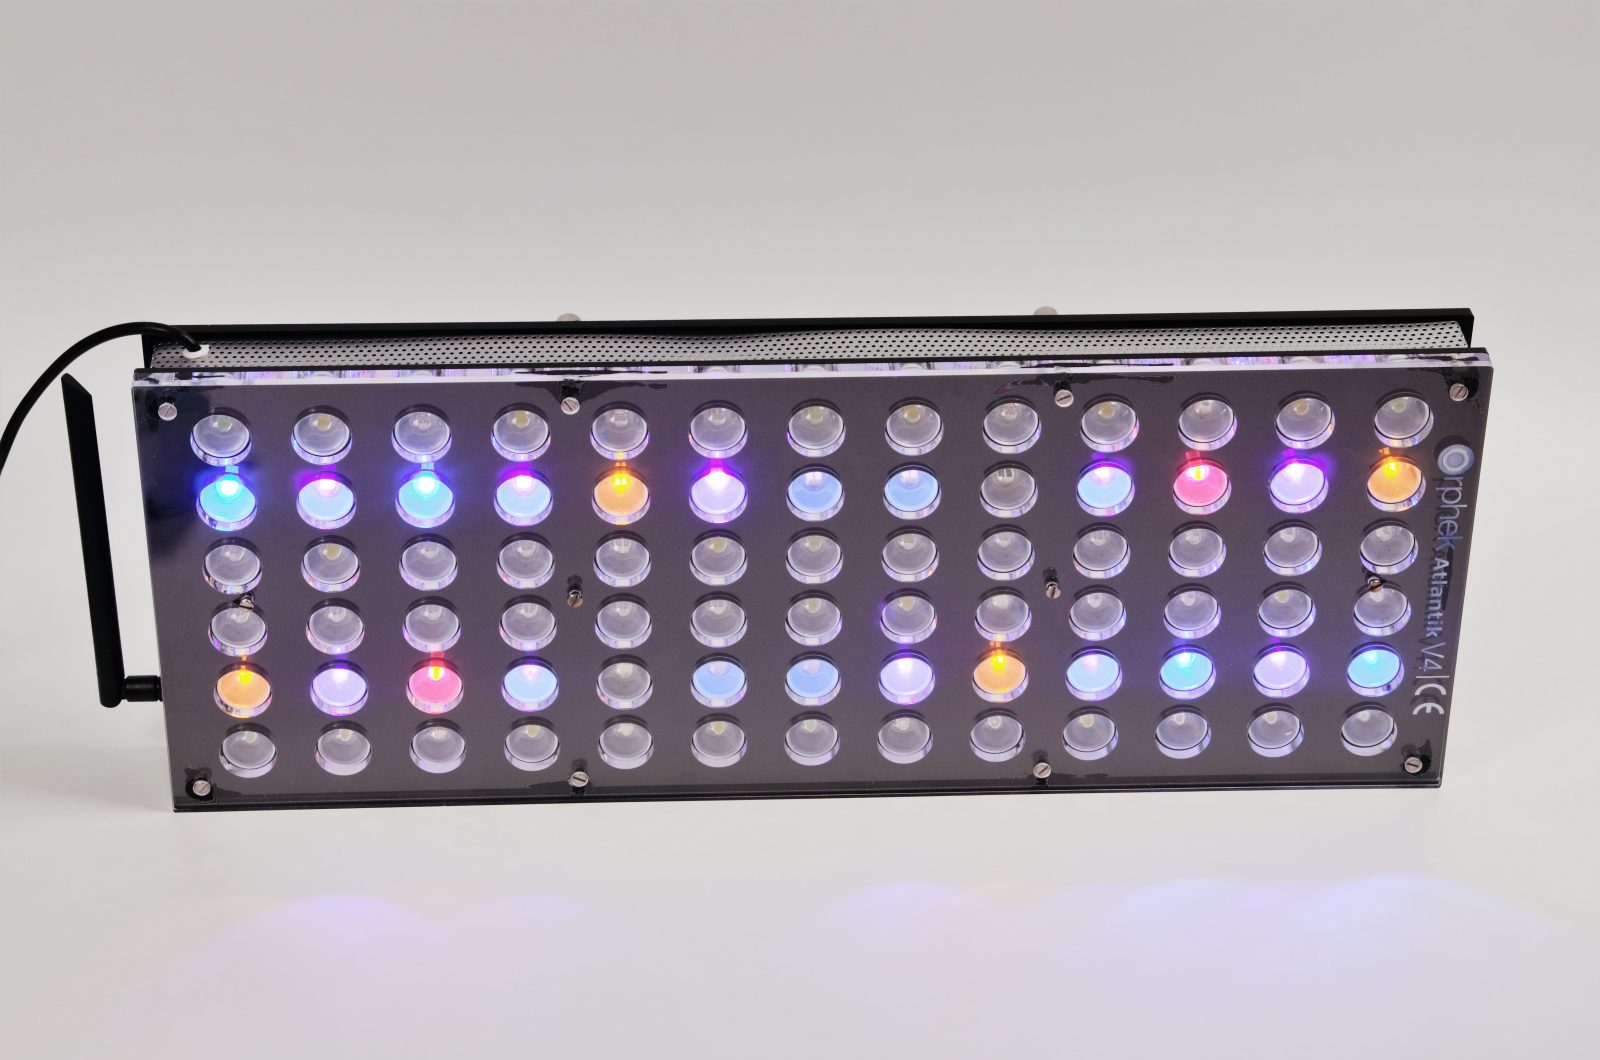 Orphek-Aquarium-LED-Lighting-Reef-Atlantic-V4-light-on-channel 3 + 4